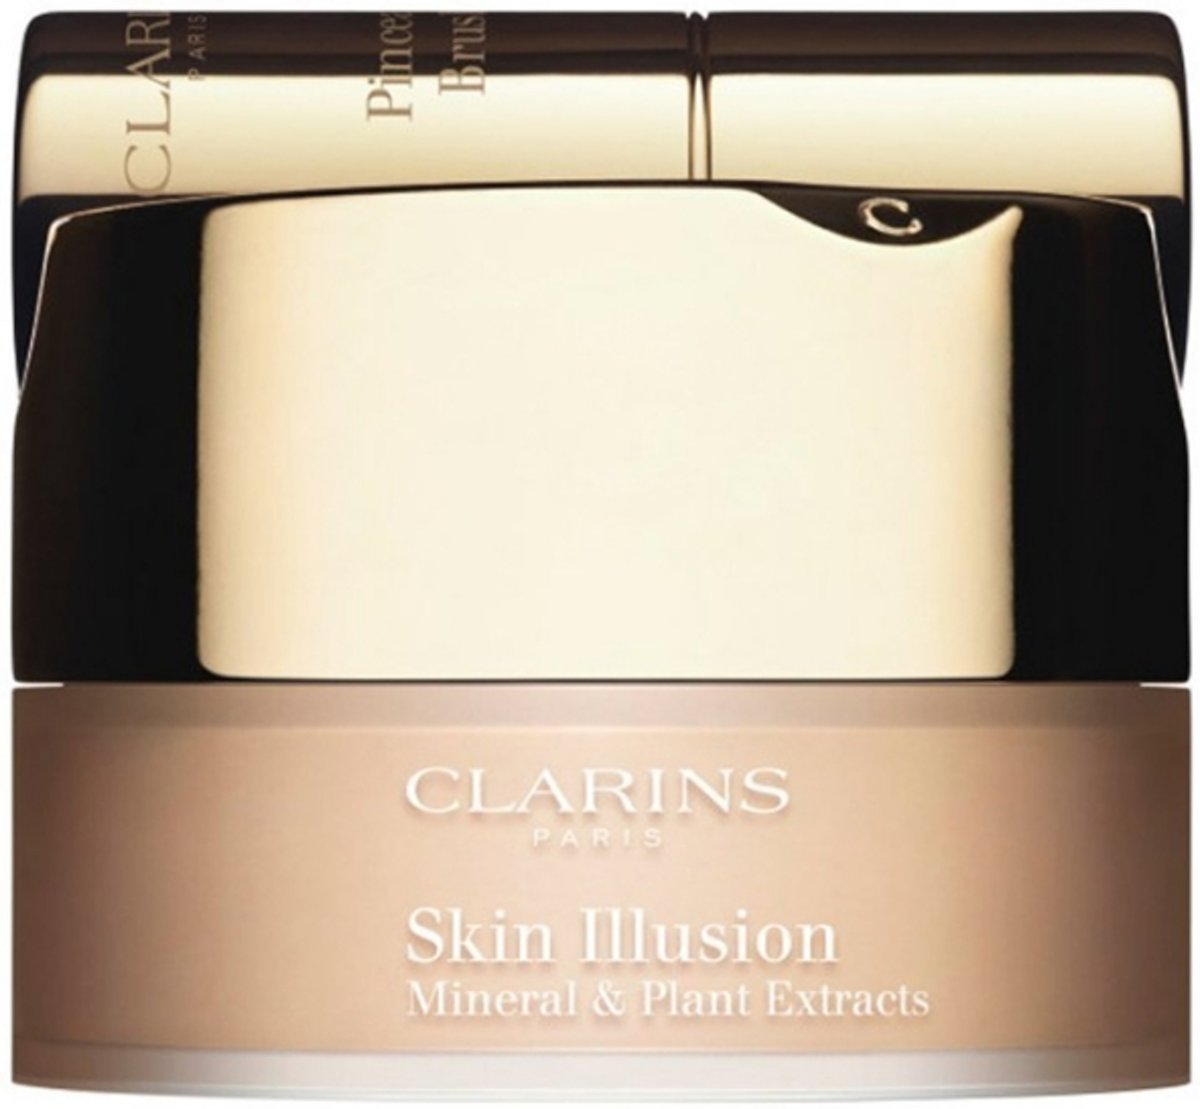 Clarins Skin Illusion Loose Powder Foundation - nr 108 - Foundation